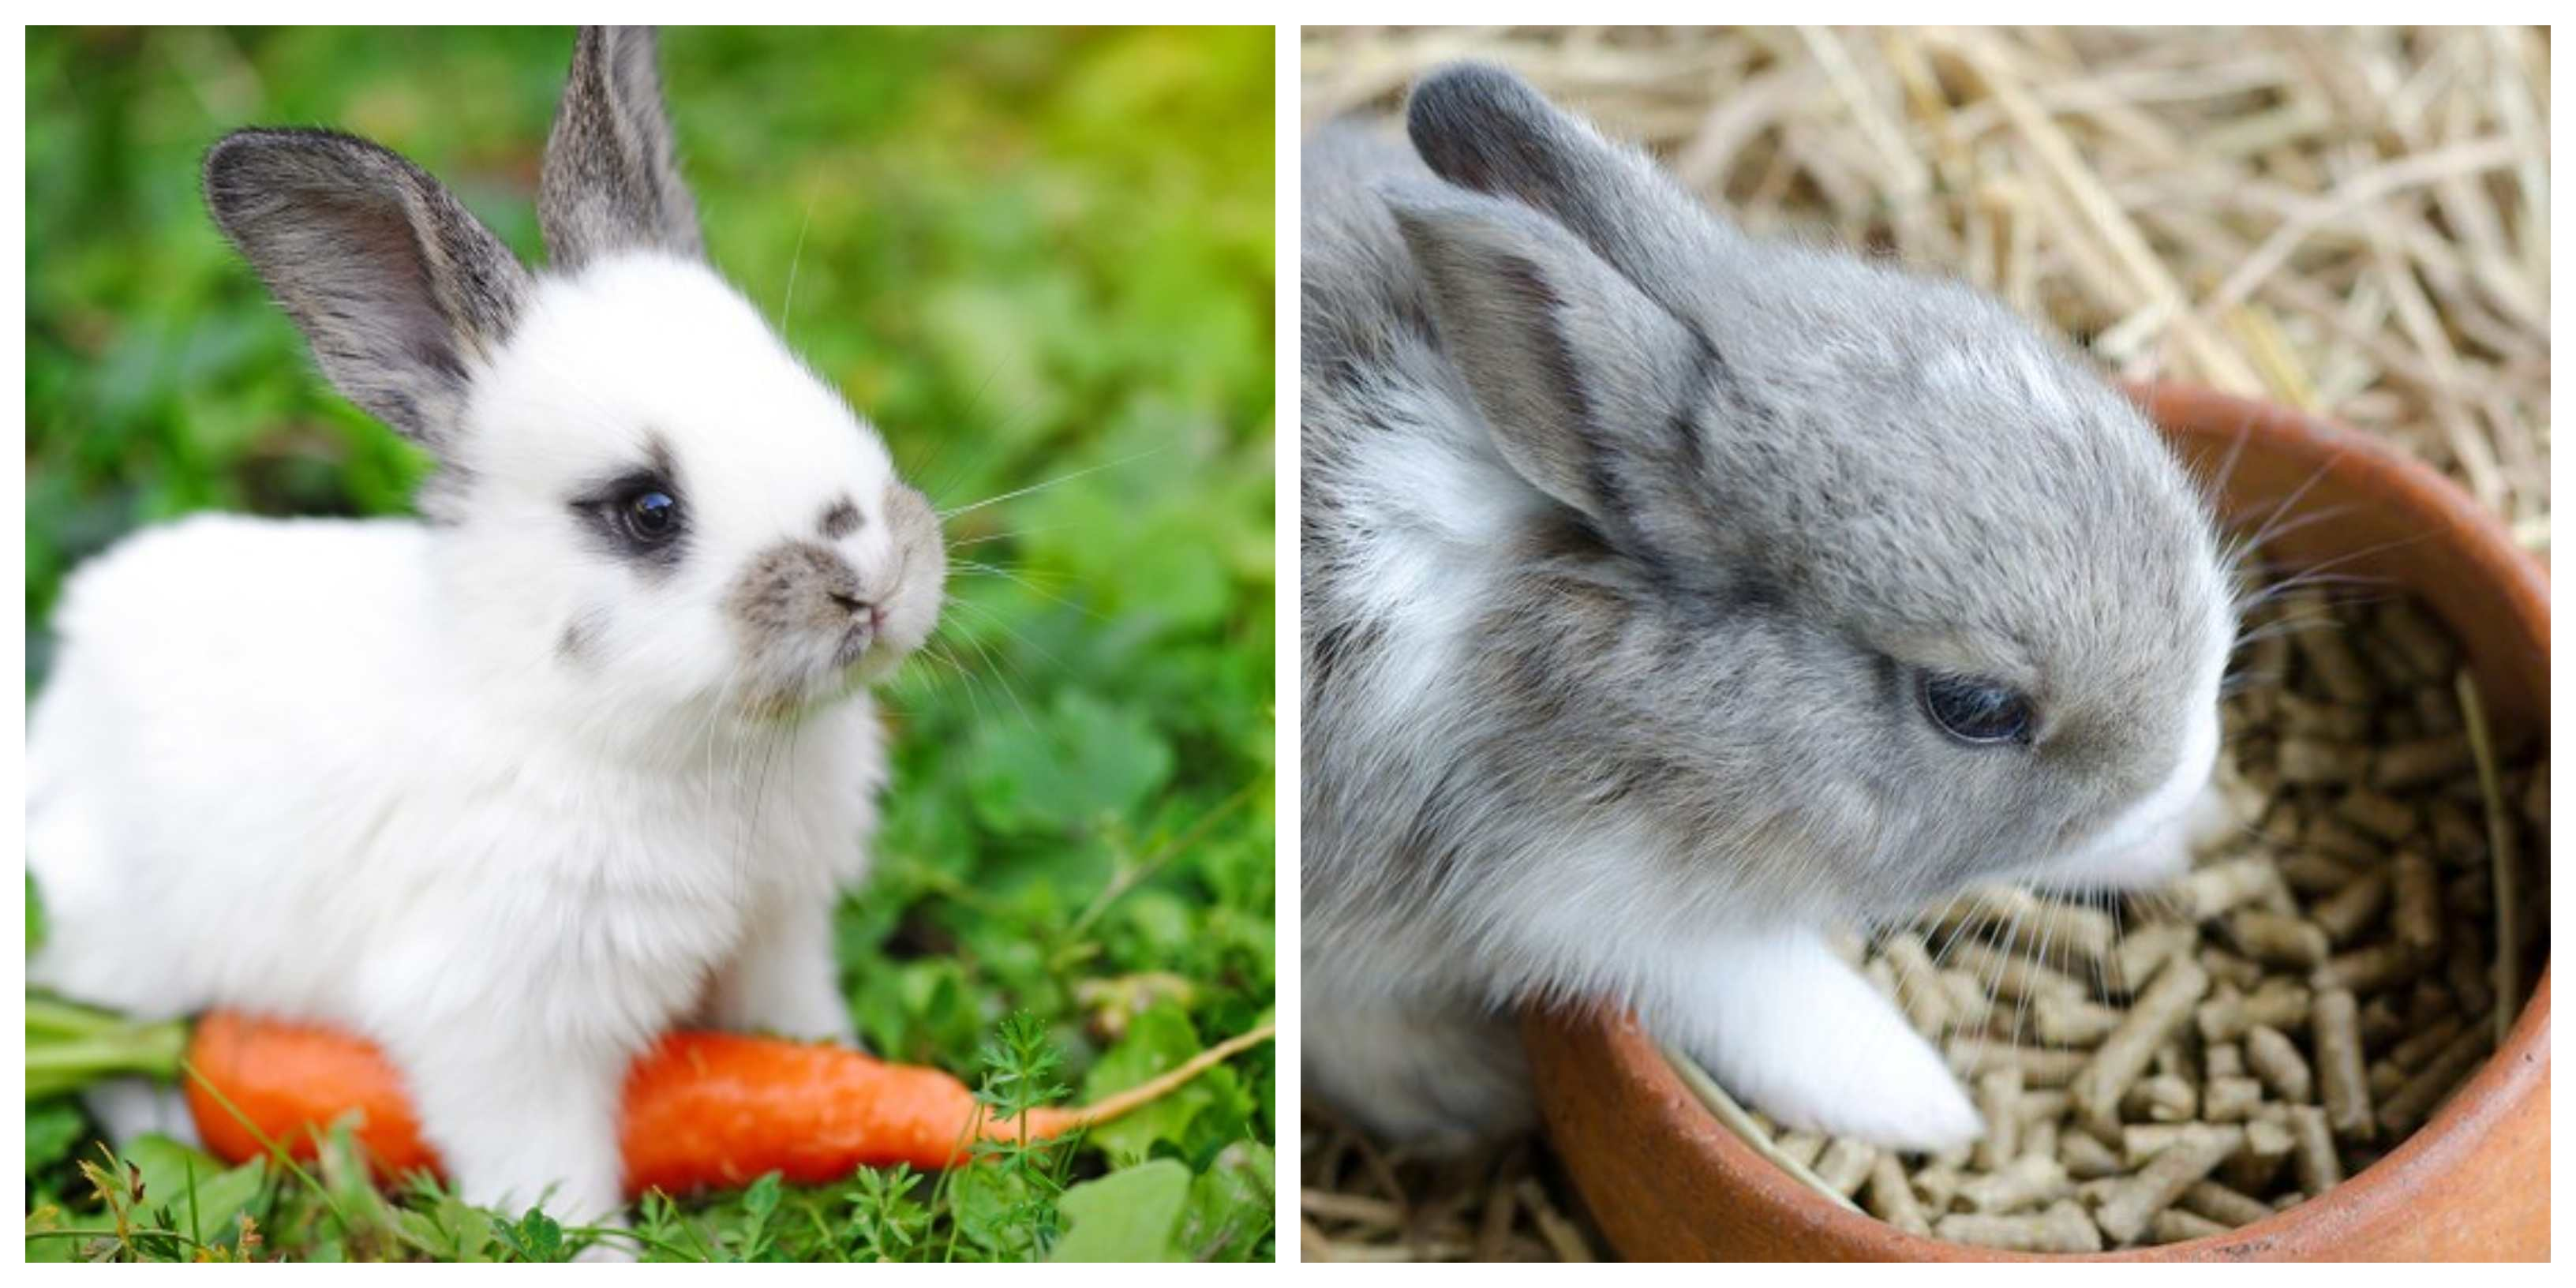 two rabbits eating carrots and feed